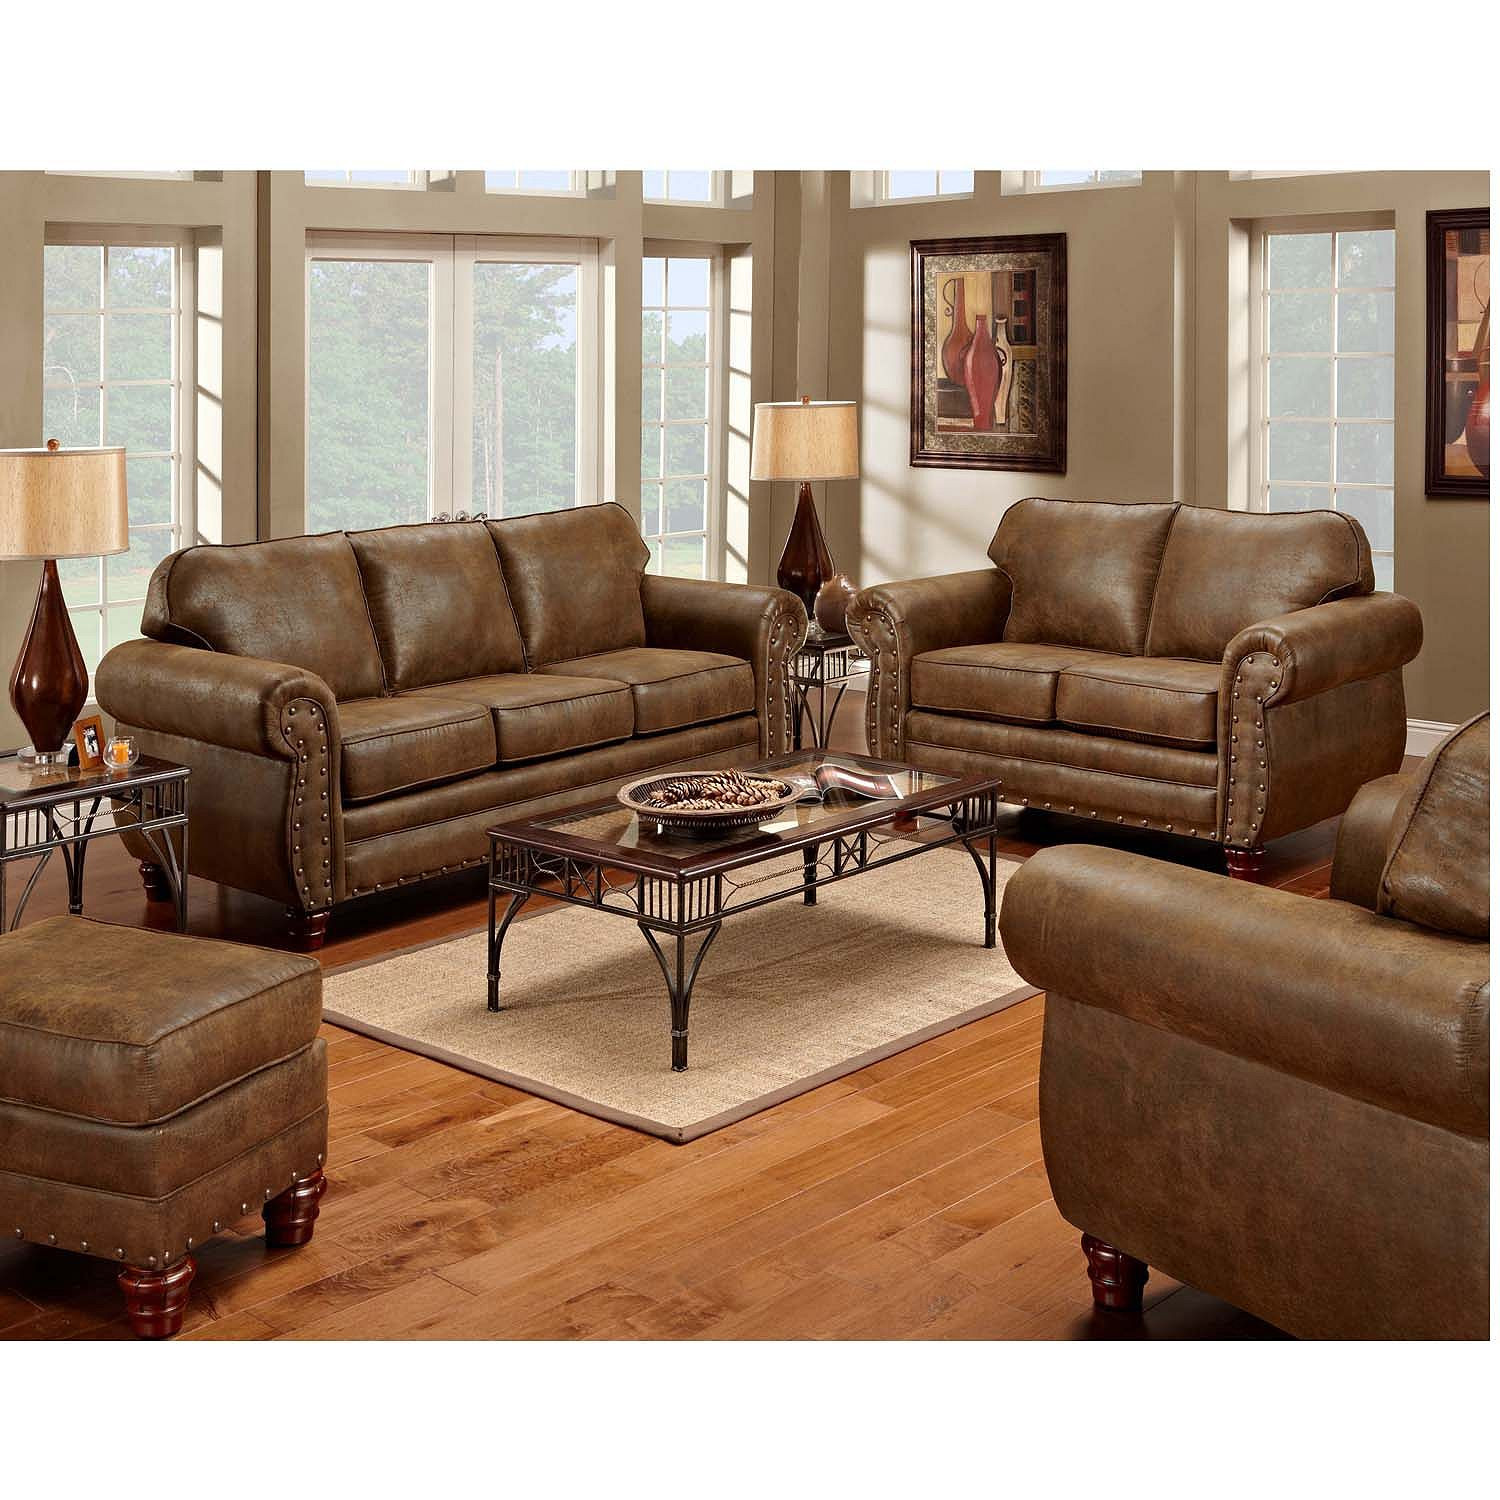 Best ideas about Living Room Couches . Save or Pin Top 4 fortable Chairs for Living Room Now.